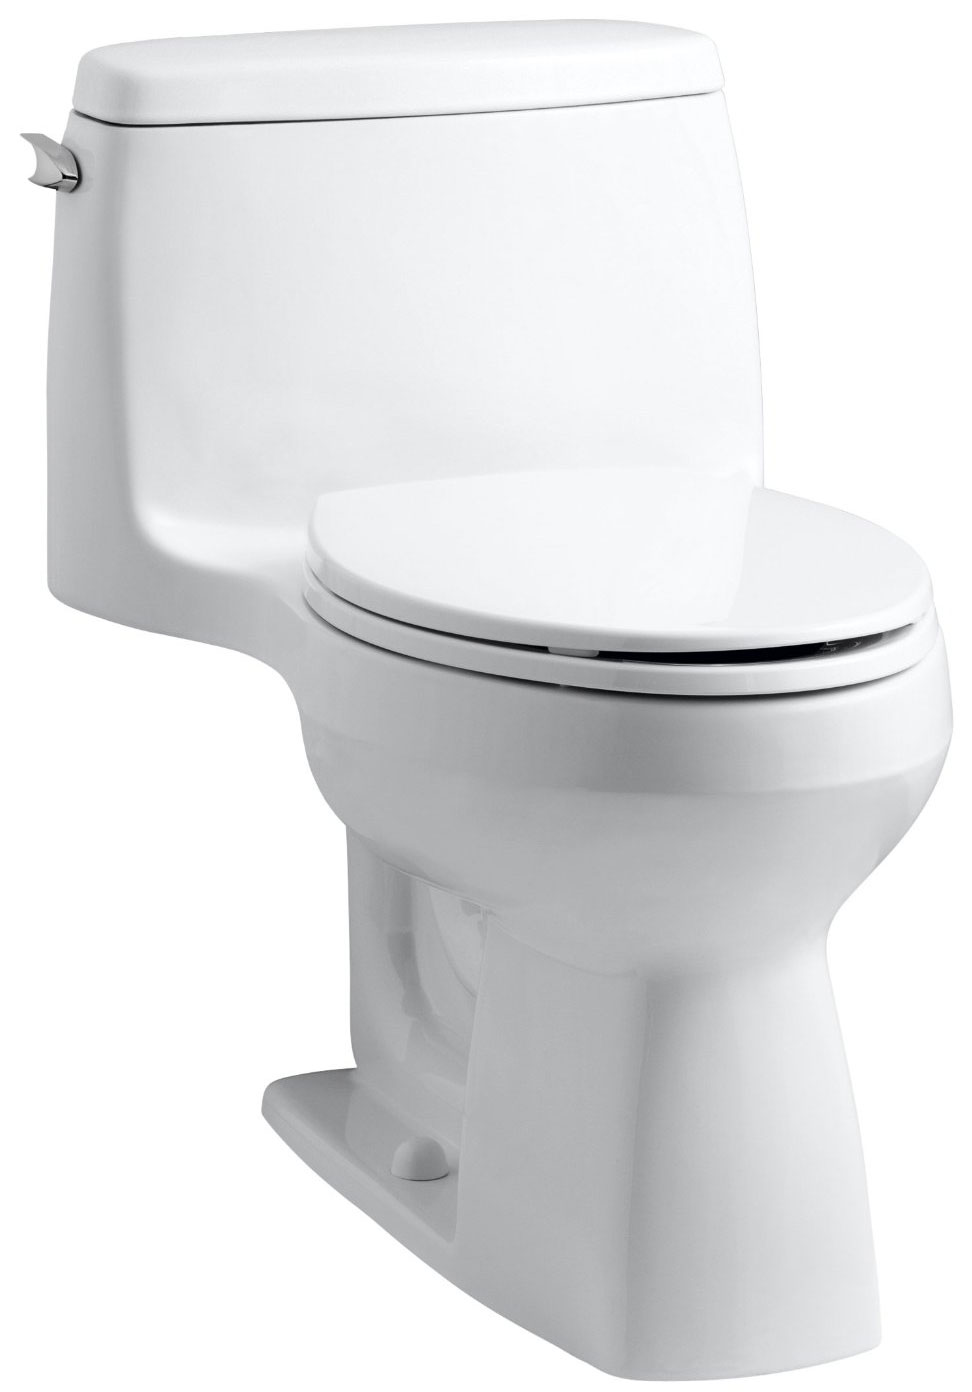 Kohler's Santa Rosa one-piece toilet has a small footprint and loads